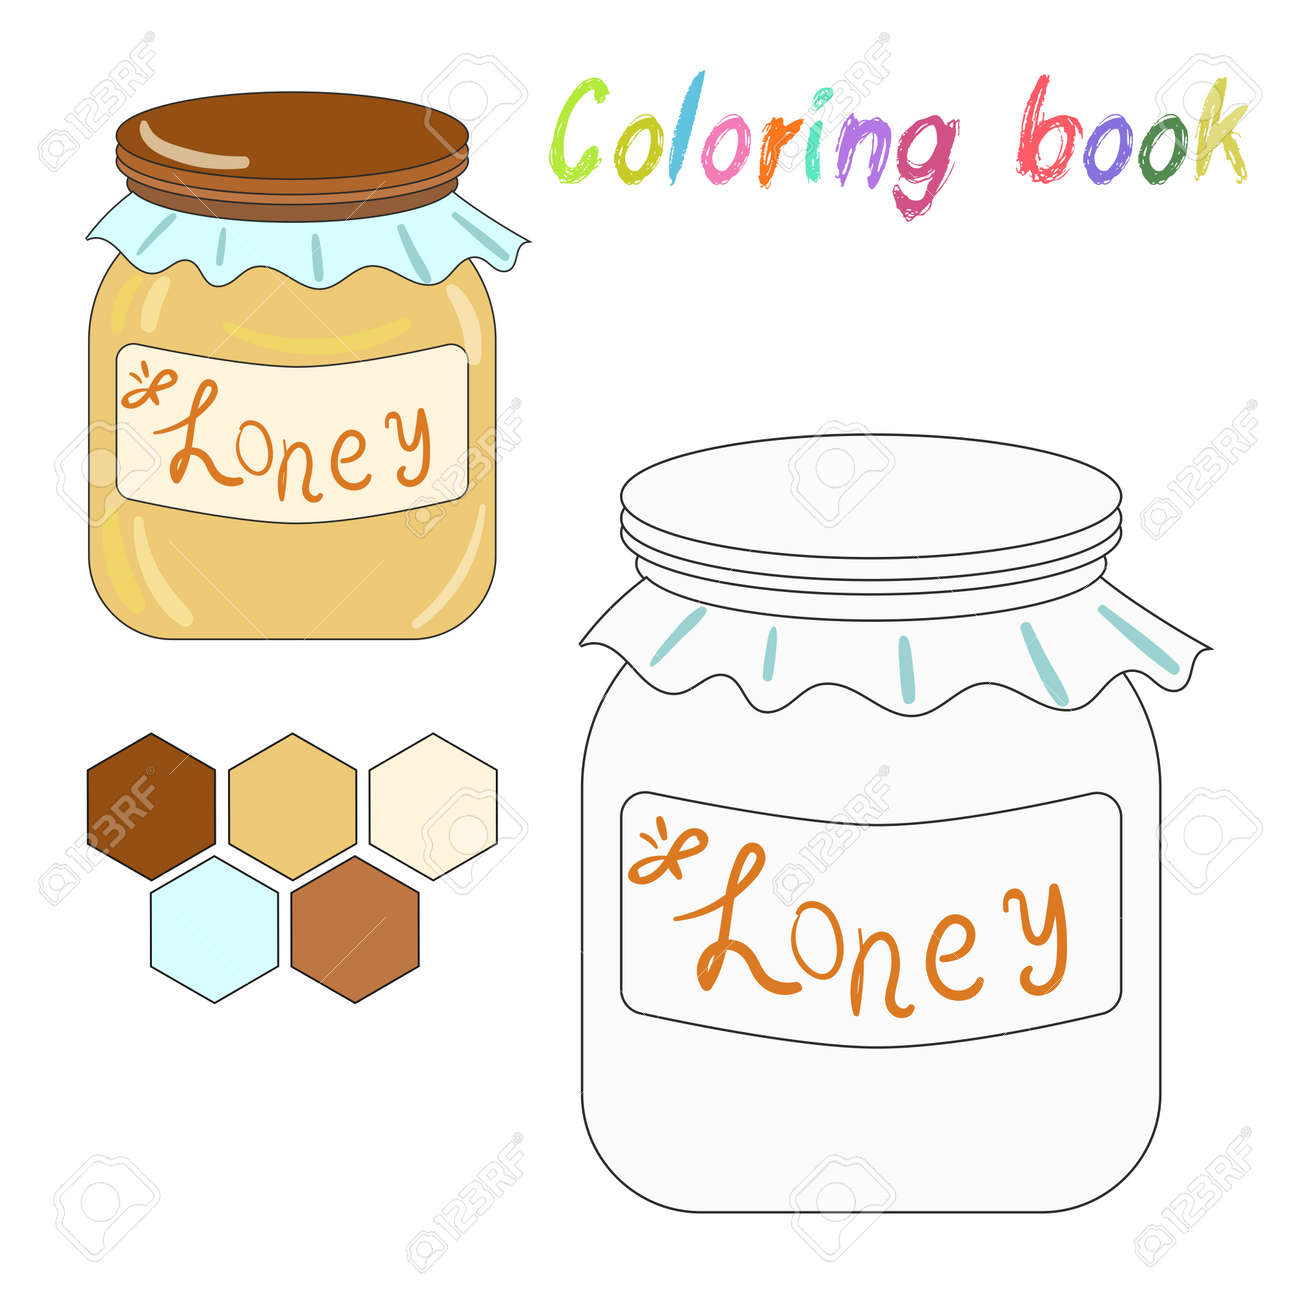 Coloring Book Honey Kids Layout For Game Doodle Hand Drawn Vector Illustration Stock